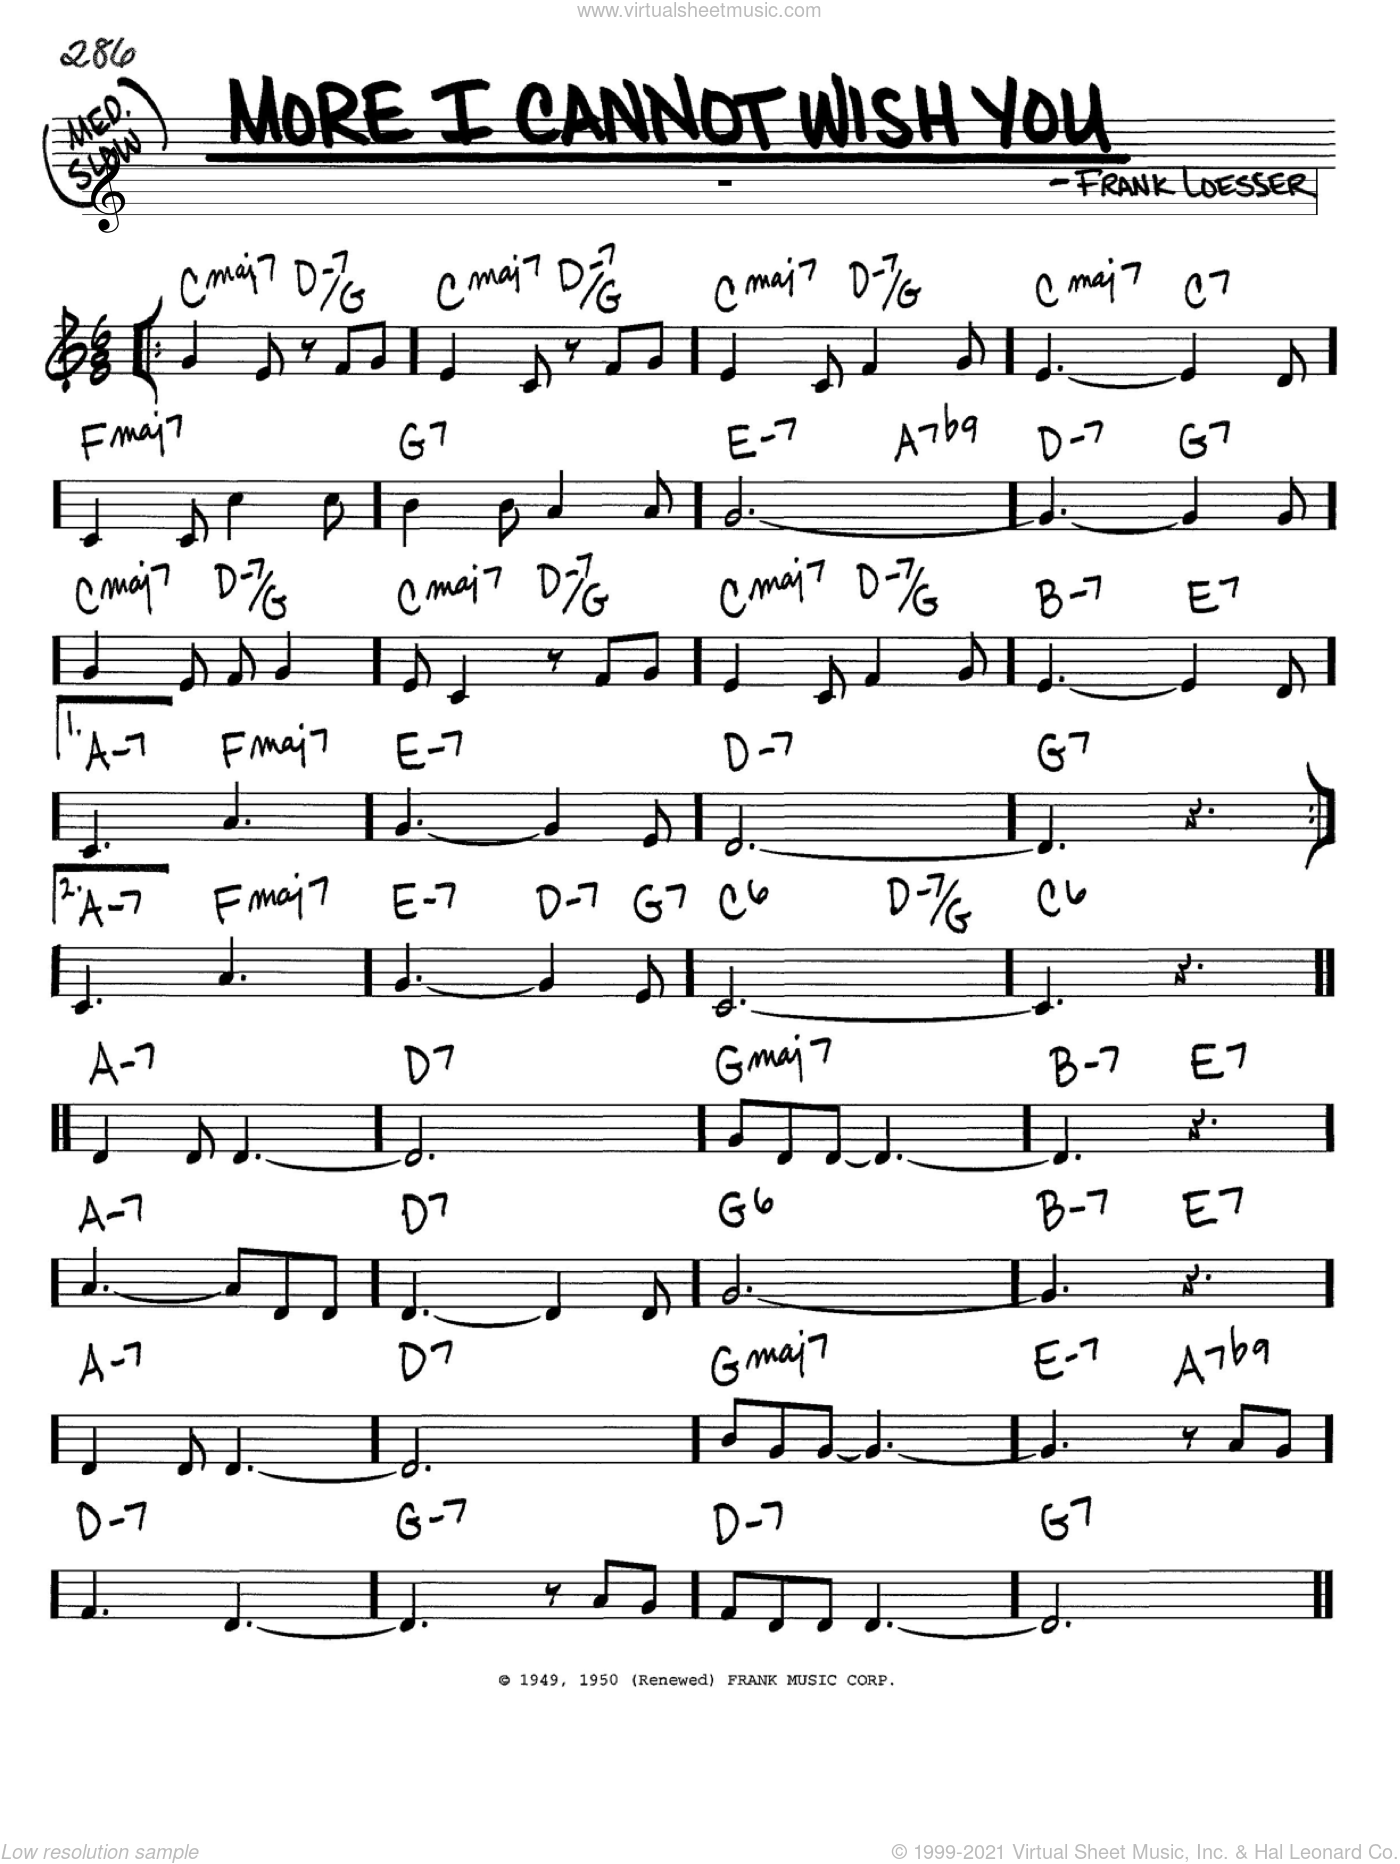 More I Cannot Wish You sheet music for voice and other instruments (in C) by Frank Loesser, intermediate skill level